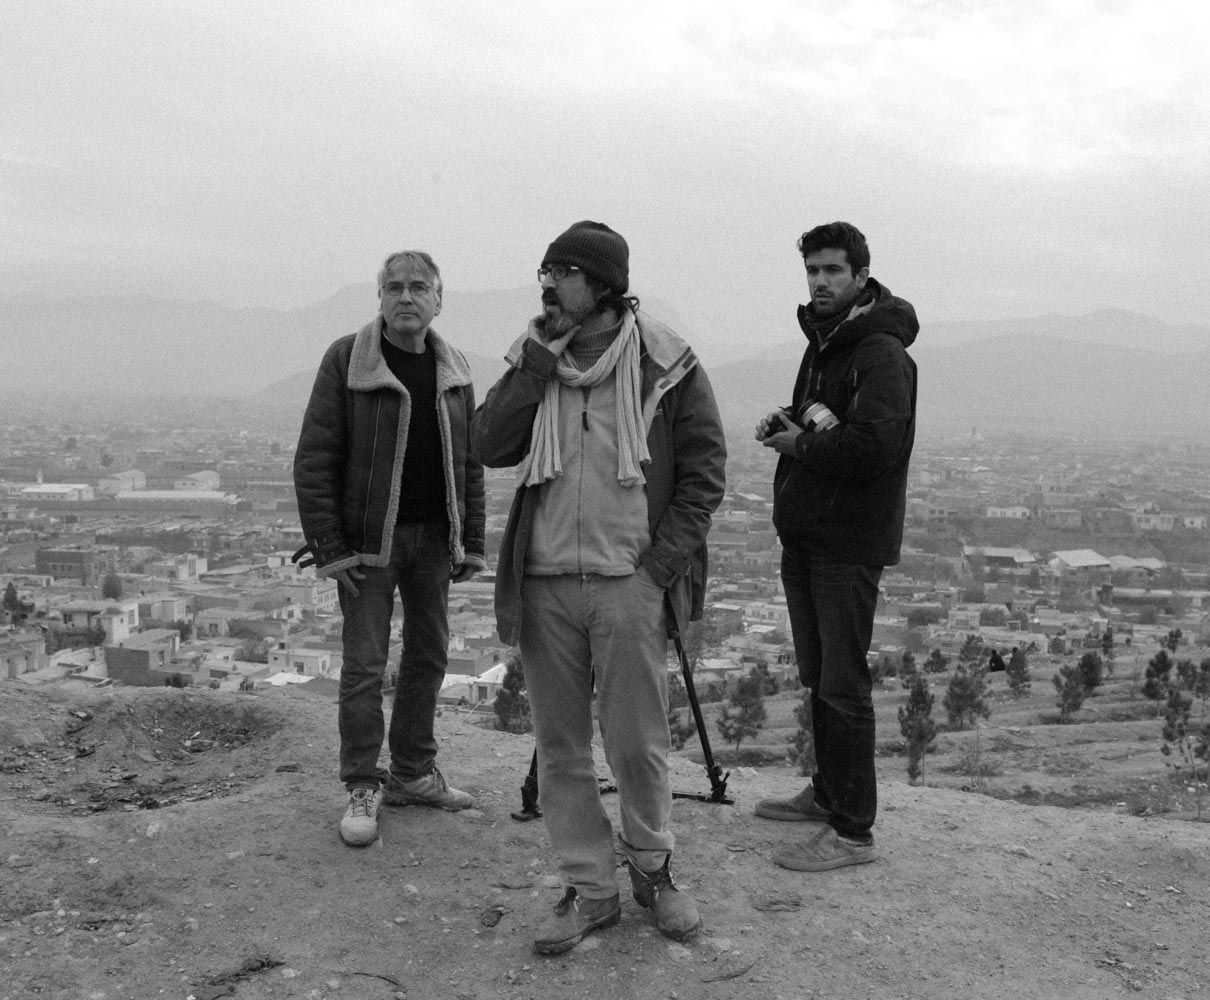 Operating a shot for Thierry Arbogast on the hills of Kabul Afghanistan.